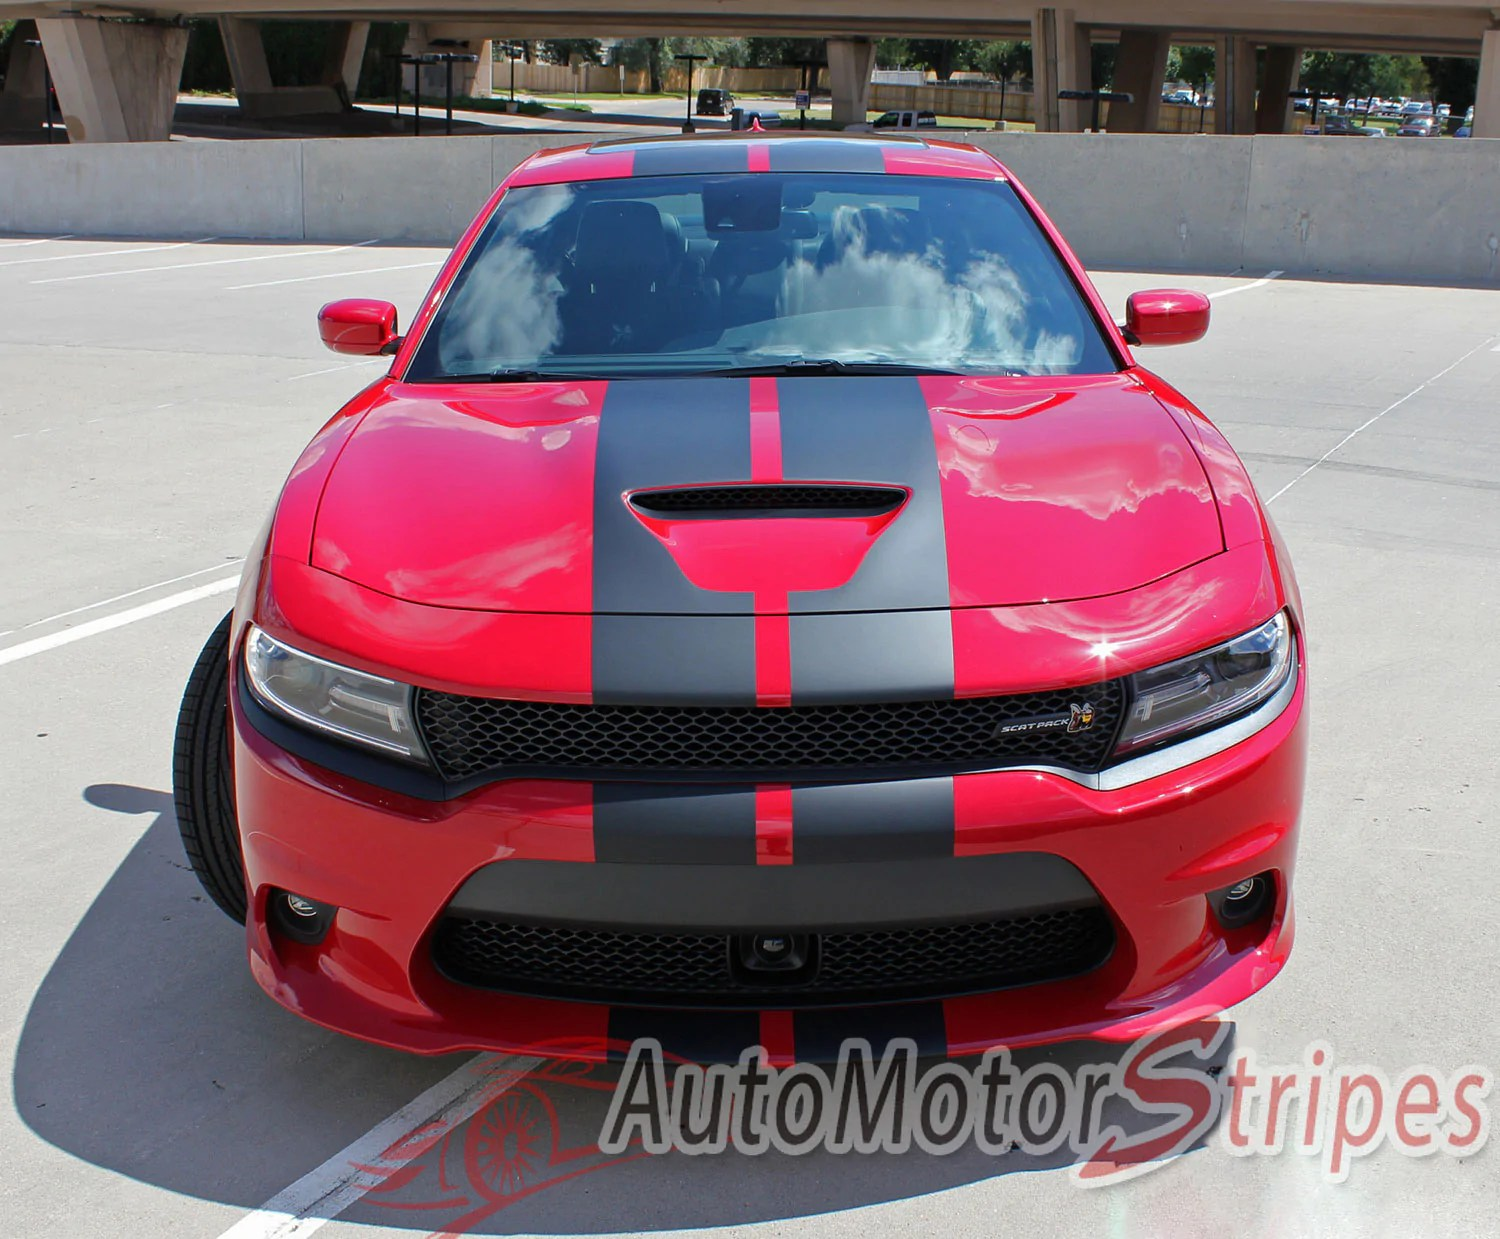 20 2016 Dodge Charger R T Custom Hoods Pictures And Ideas On Weric